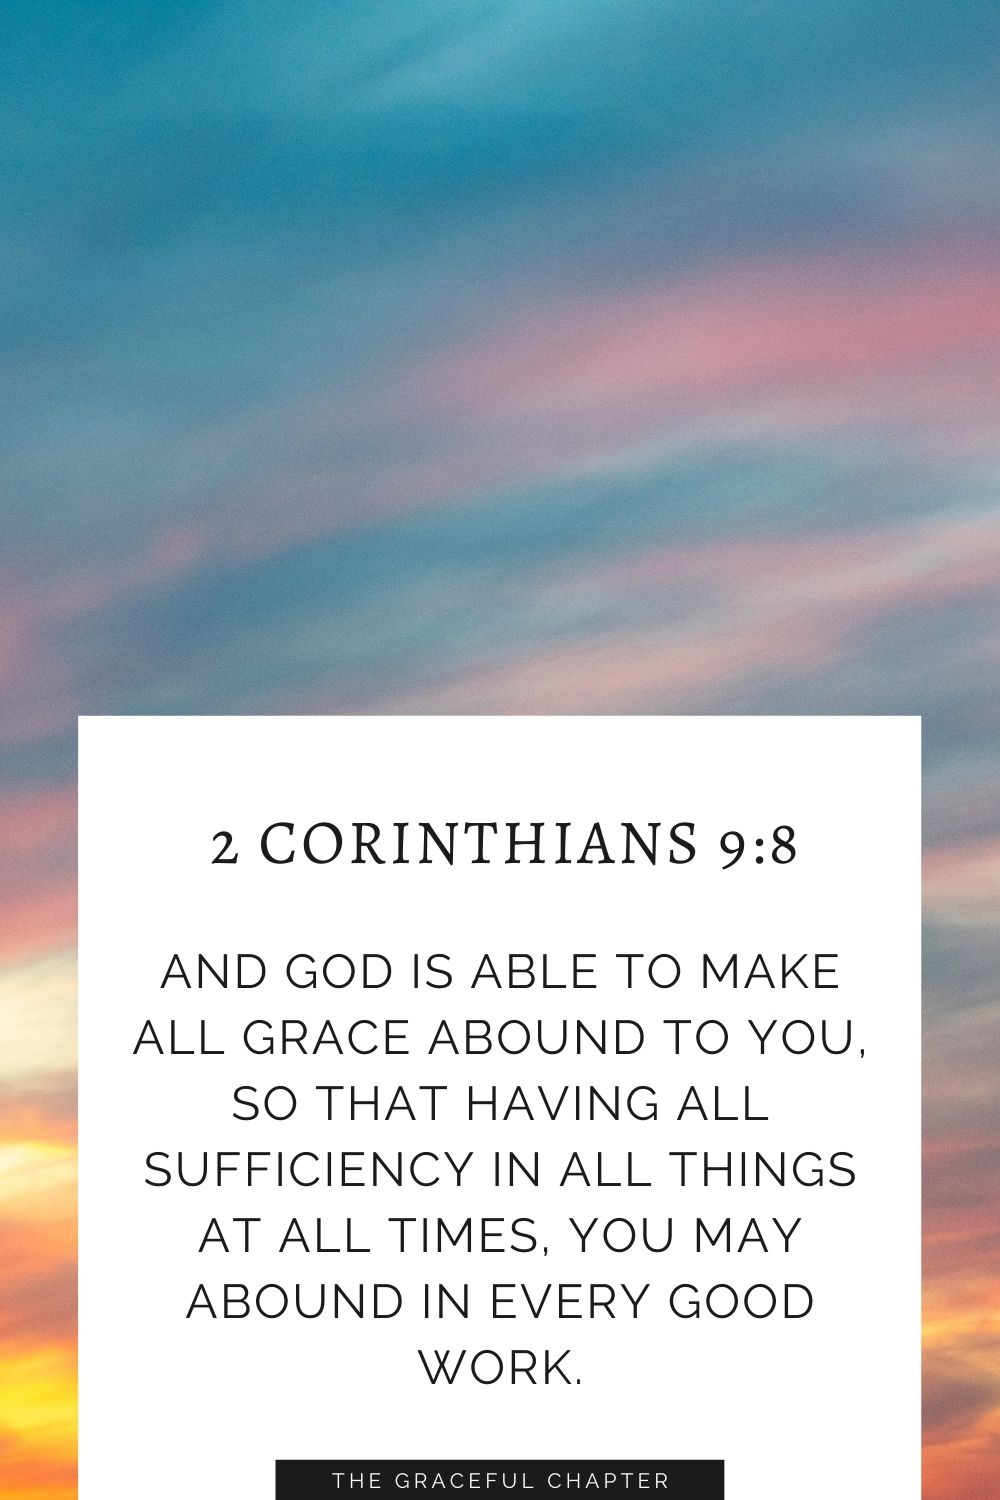 And God is able to make all grace abound to you, so that having all sufficiency in all things at all times, you may abound in every good work. 2 Corinthians 9:8